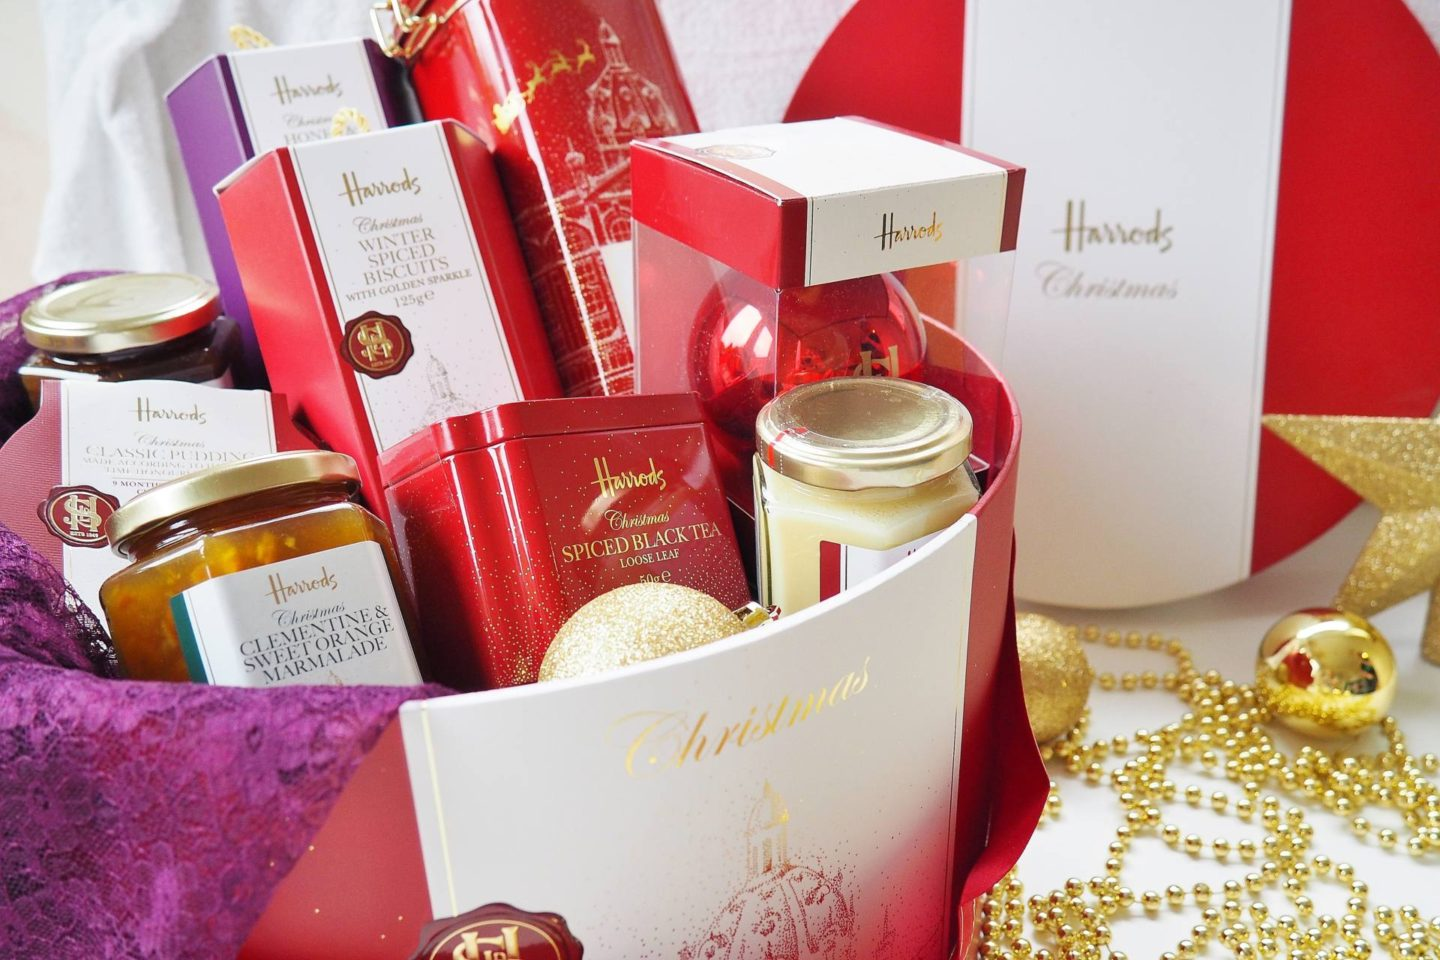 ... Emma Victoria Stokes Harrods Christmas Hamper Box Blog Review Tea ...